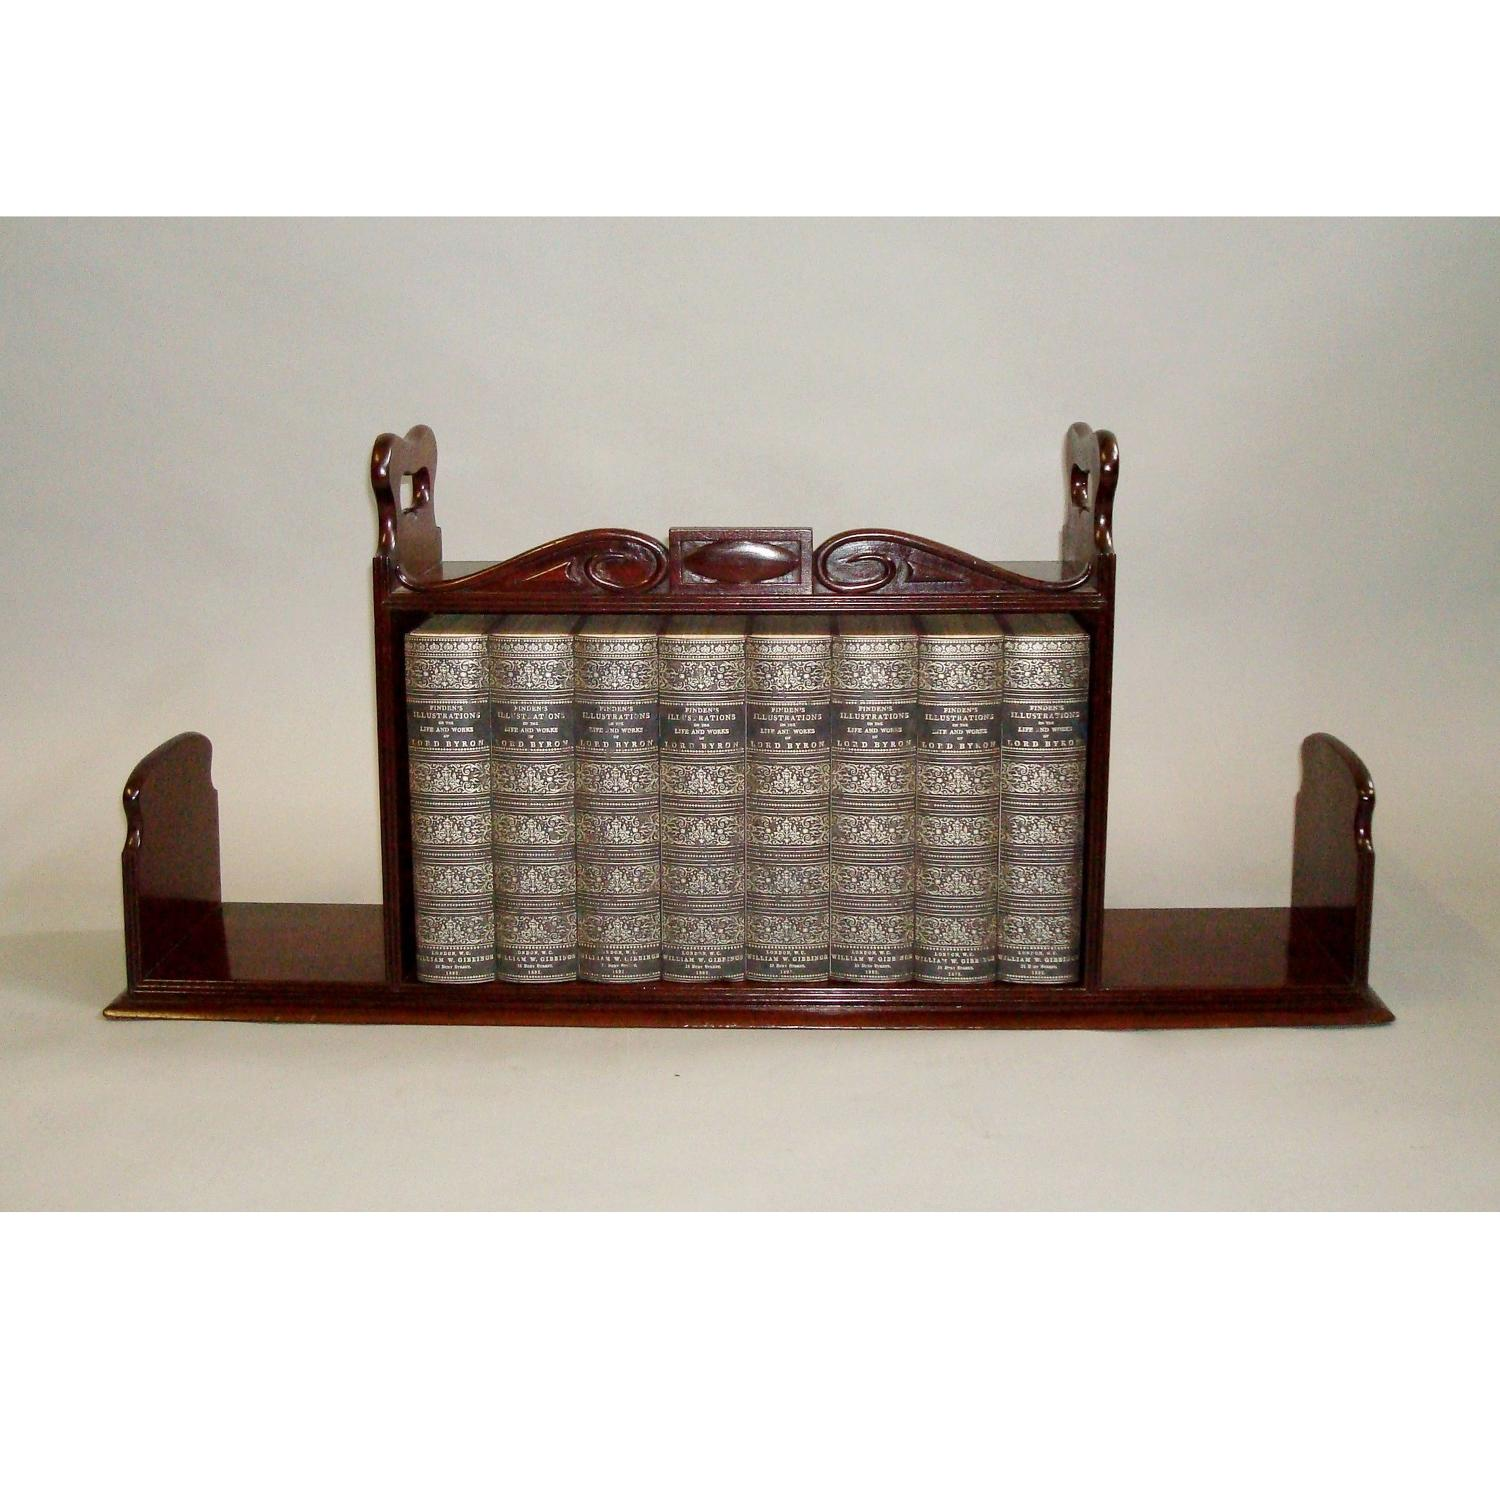 Regency mahogany book carrier